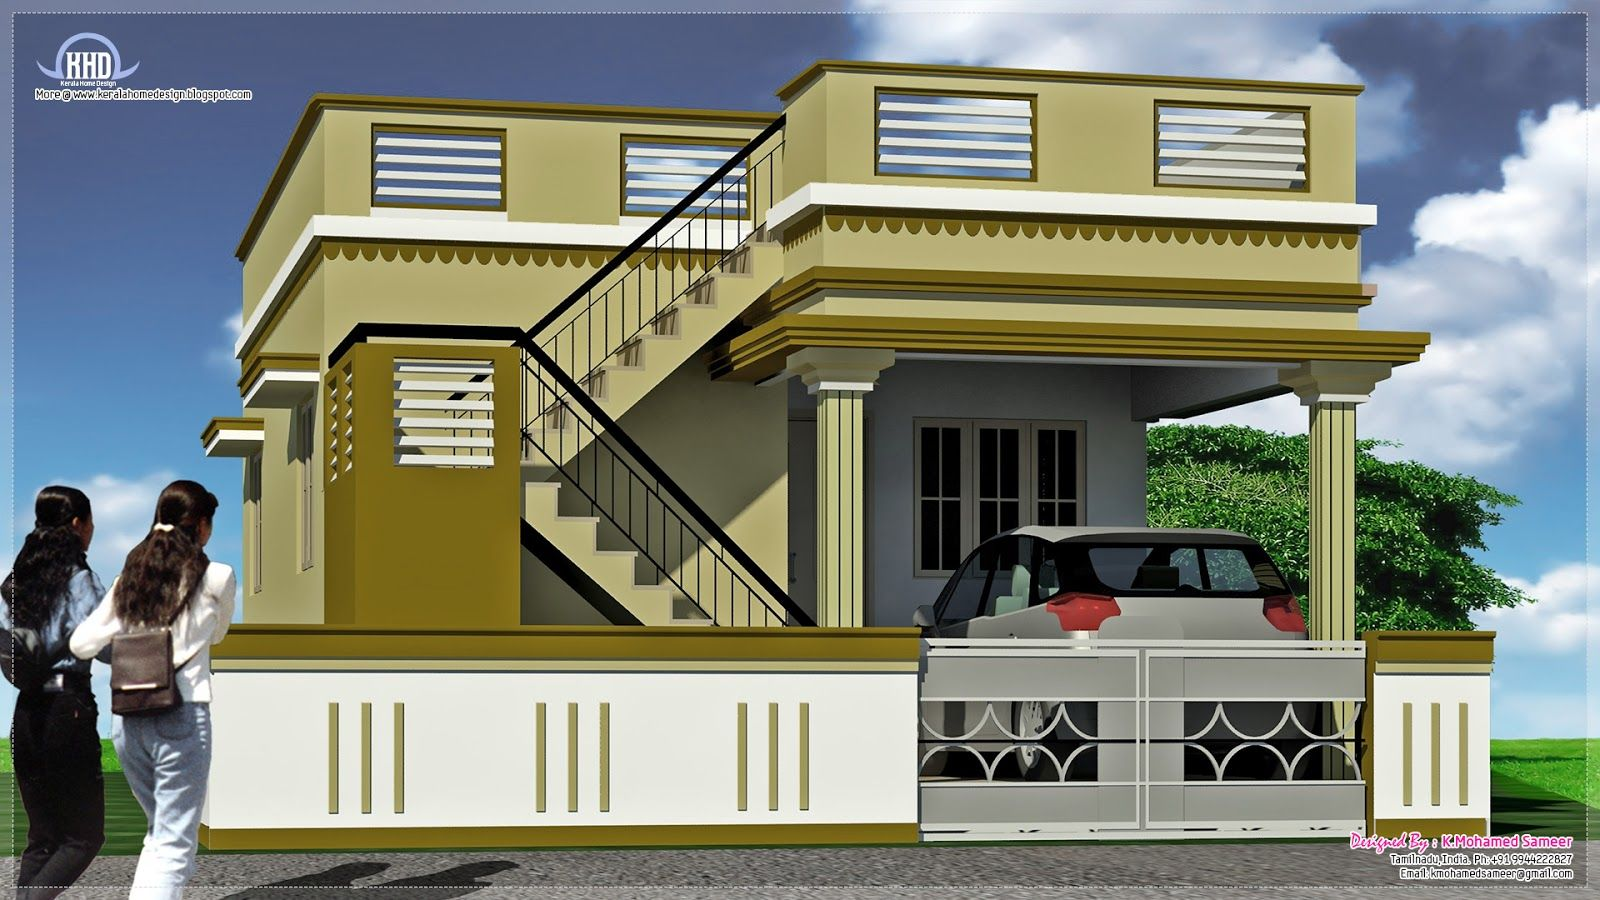 South indian house exterior designs house design plans for Home exterior design india residence houses